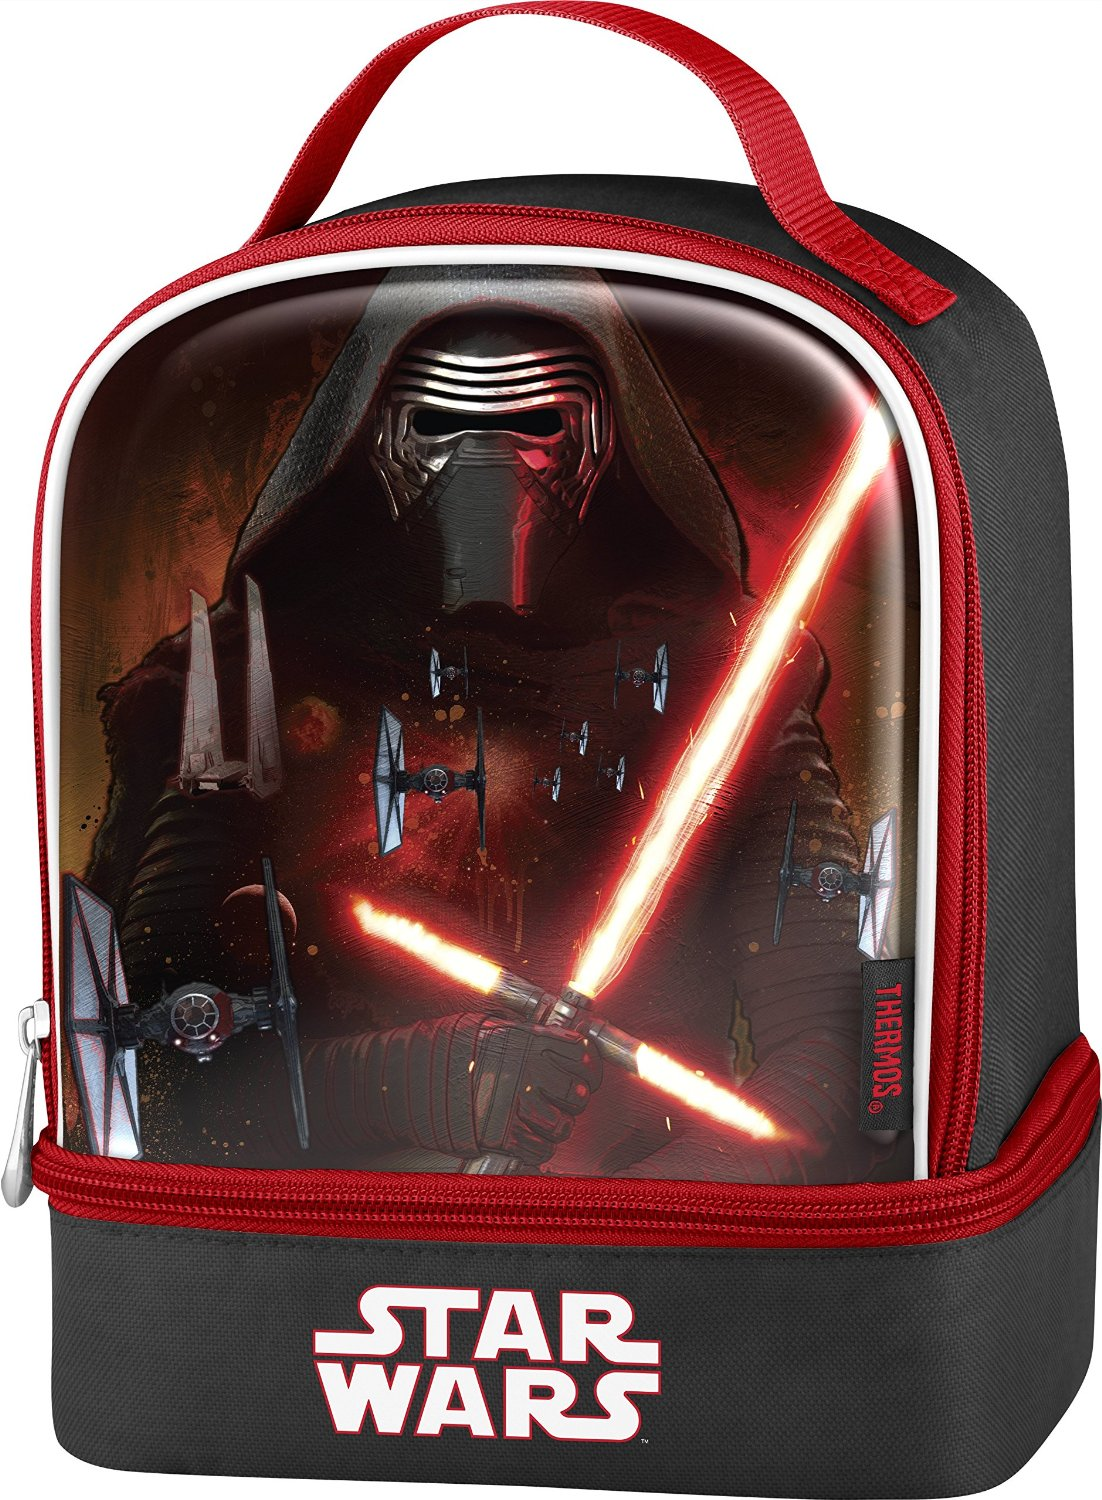 Star Wars Compartment Lunch Kit by Thermos